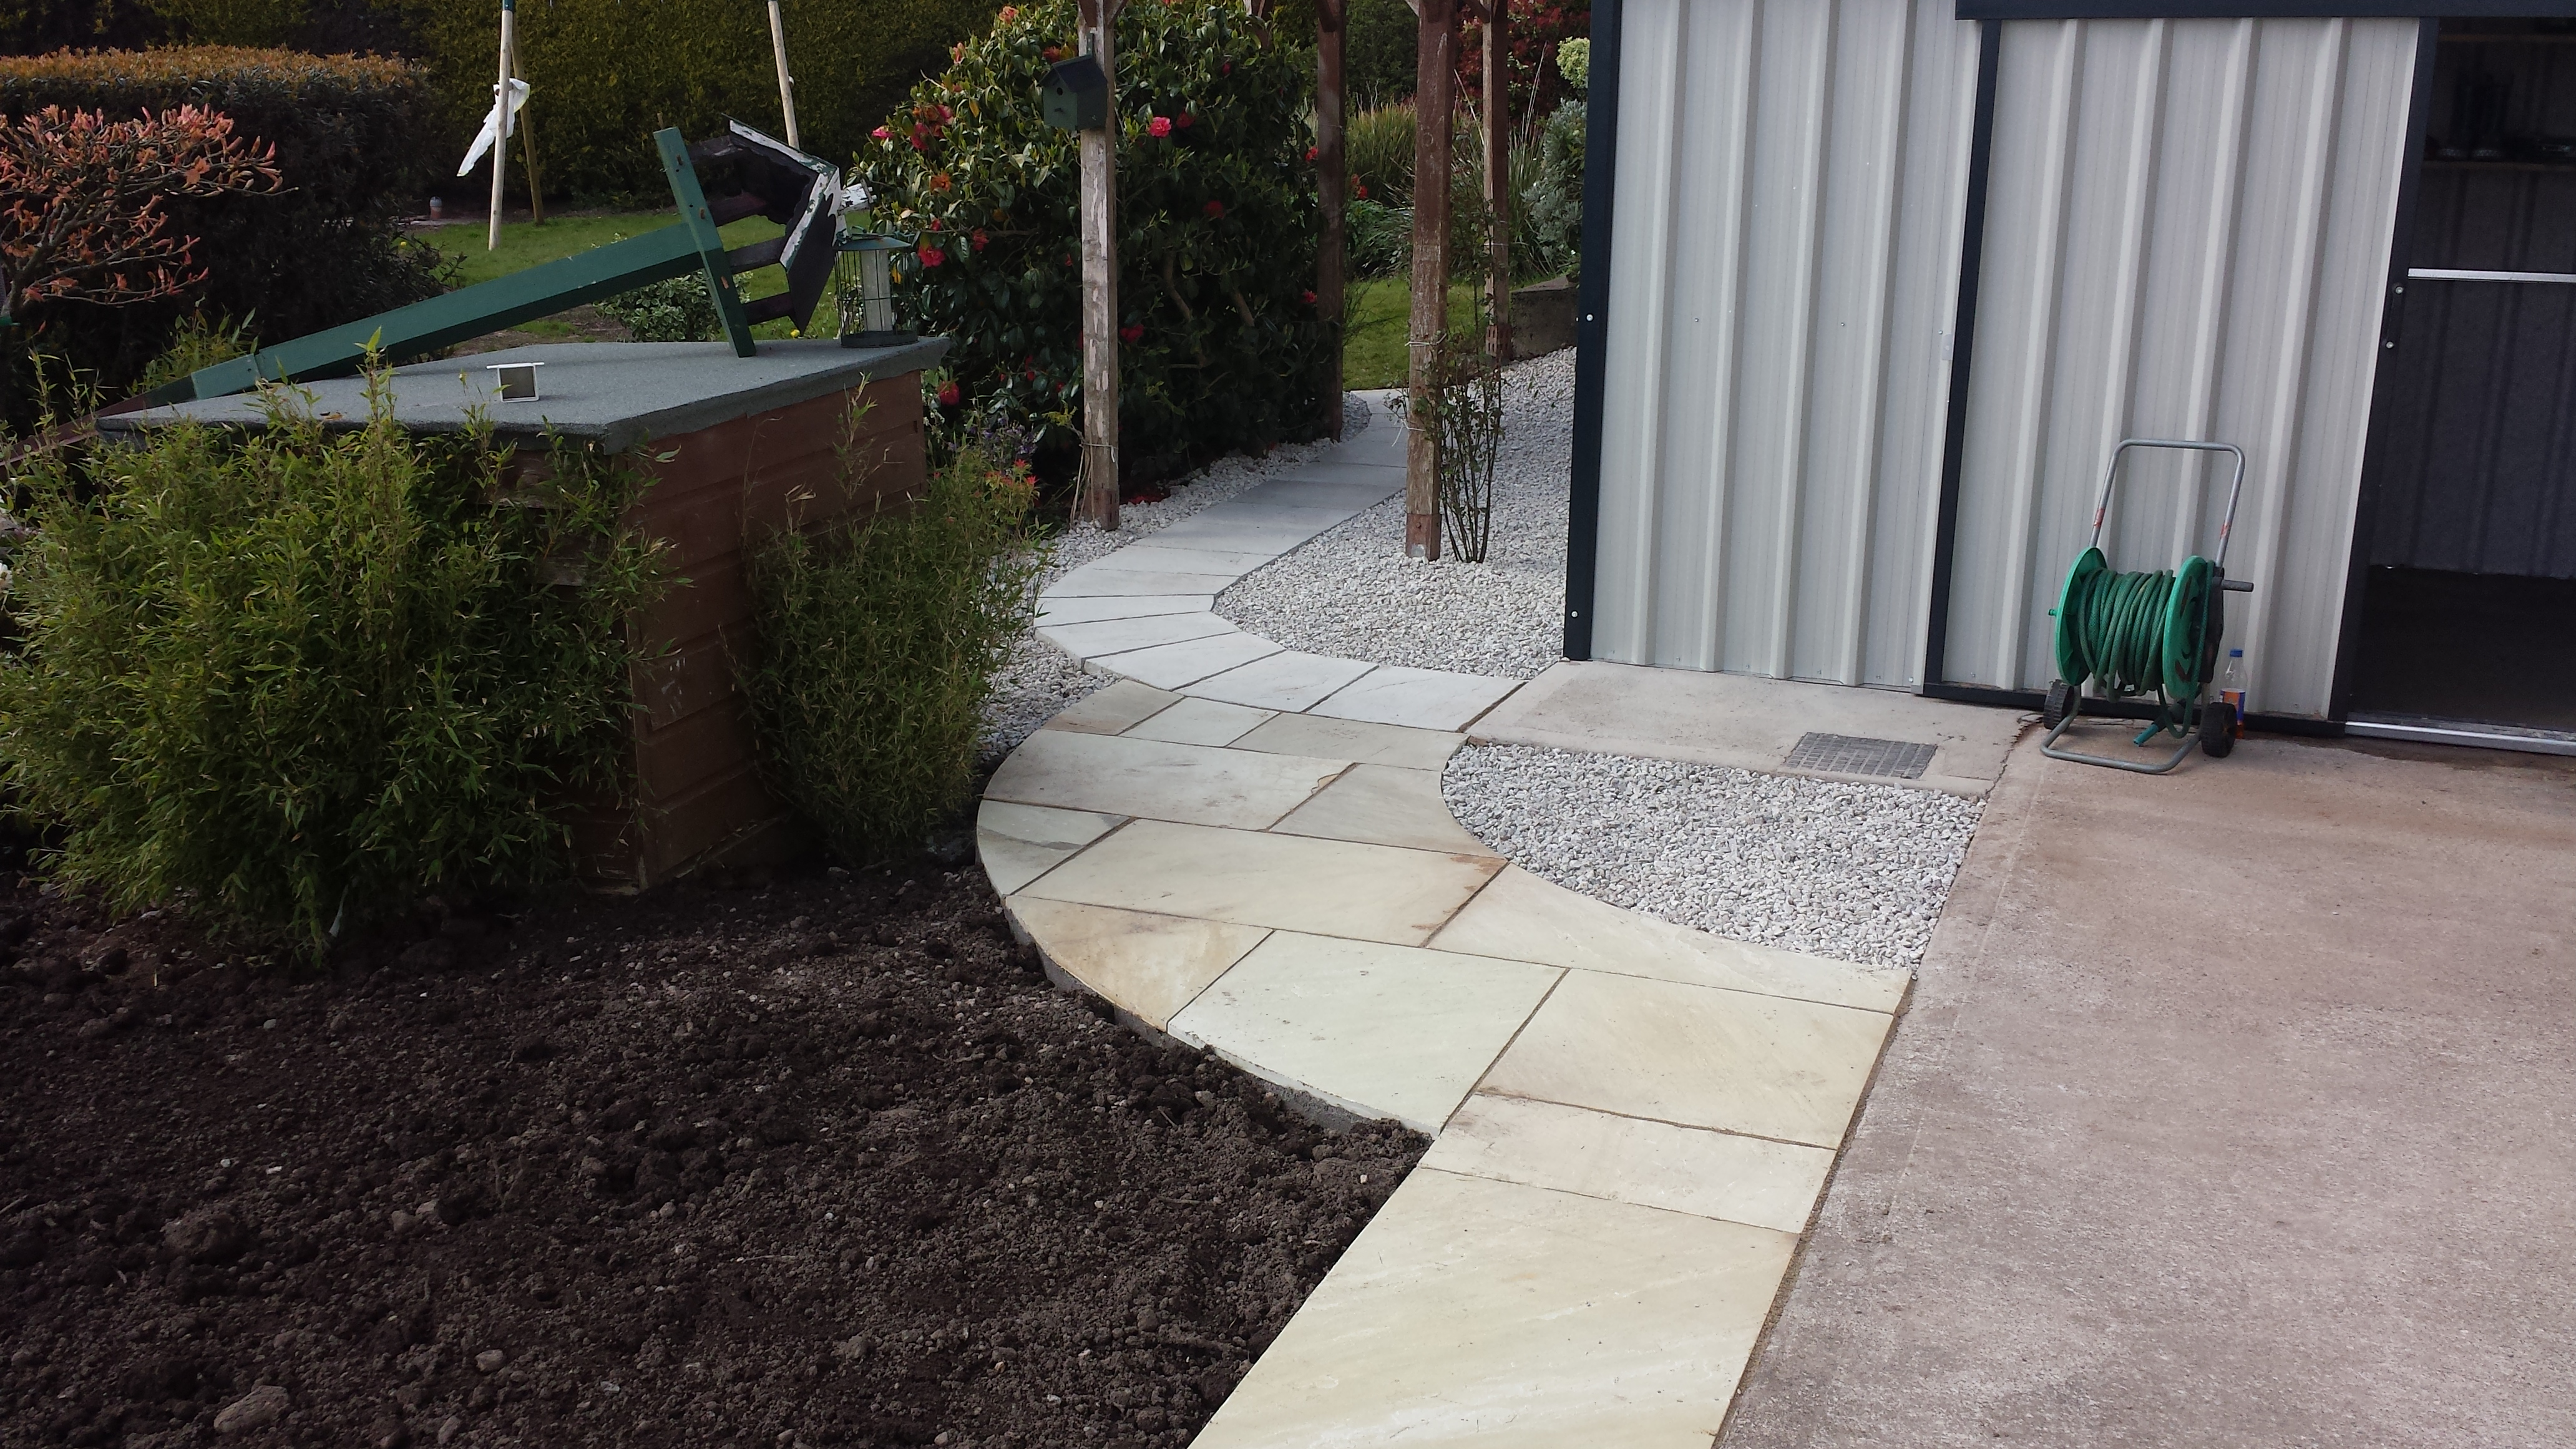 Paving installed in domestic garden - Pat Lordan Groundworks